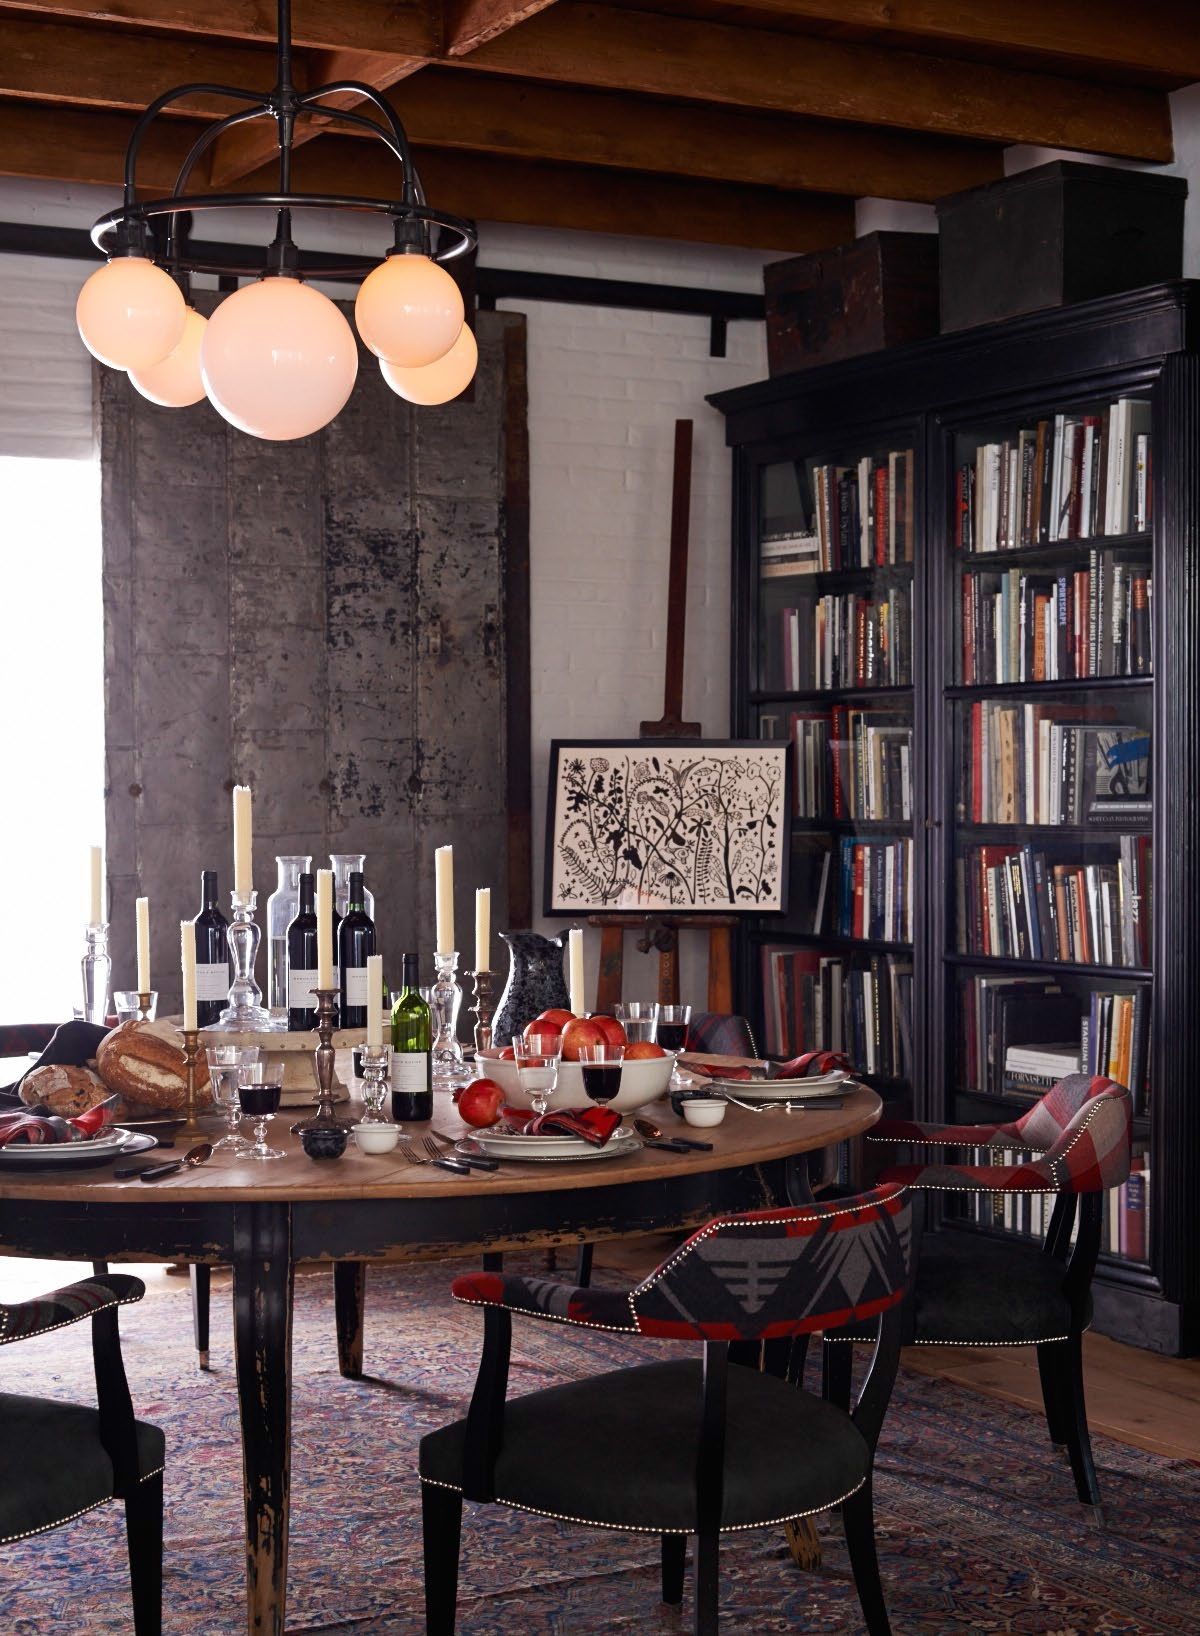 Inspired dining moment from Ralph Lauren Homes West Village